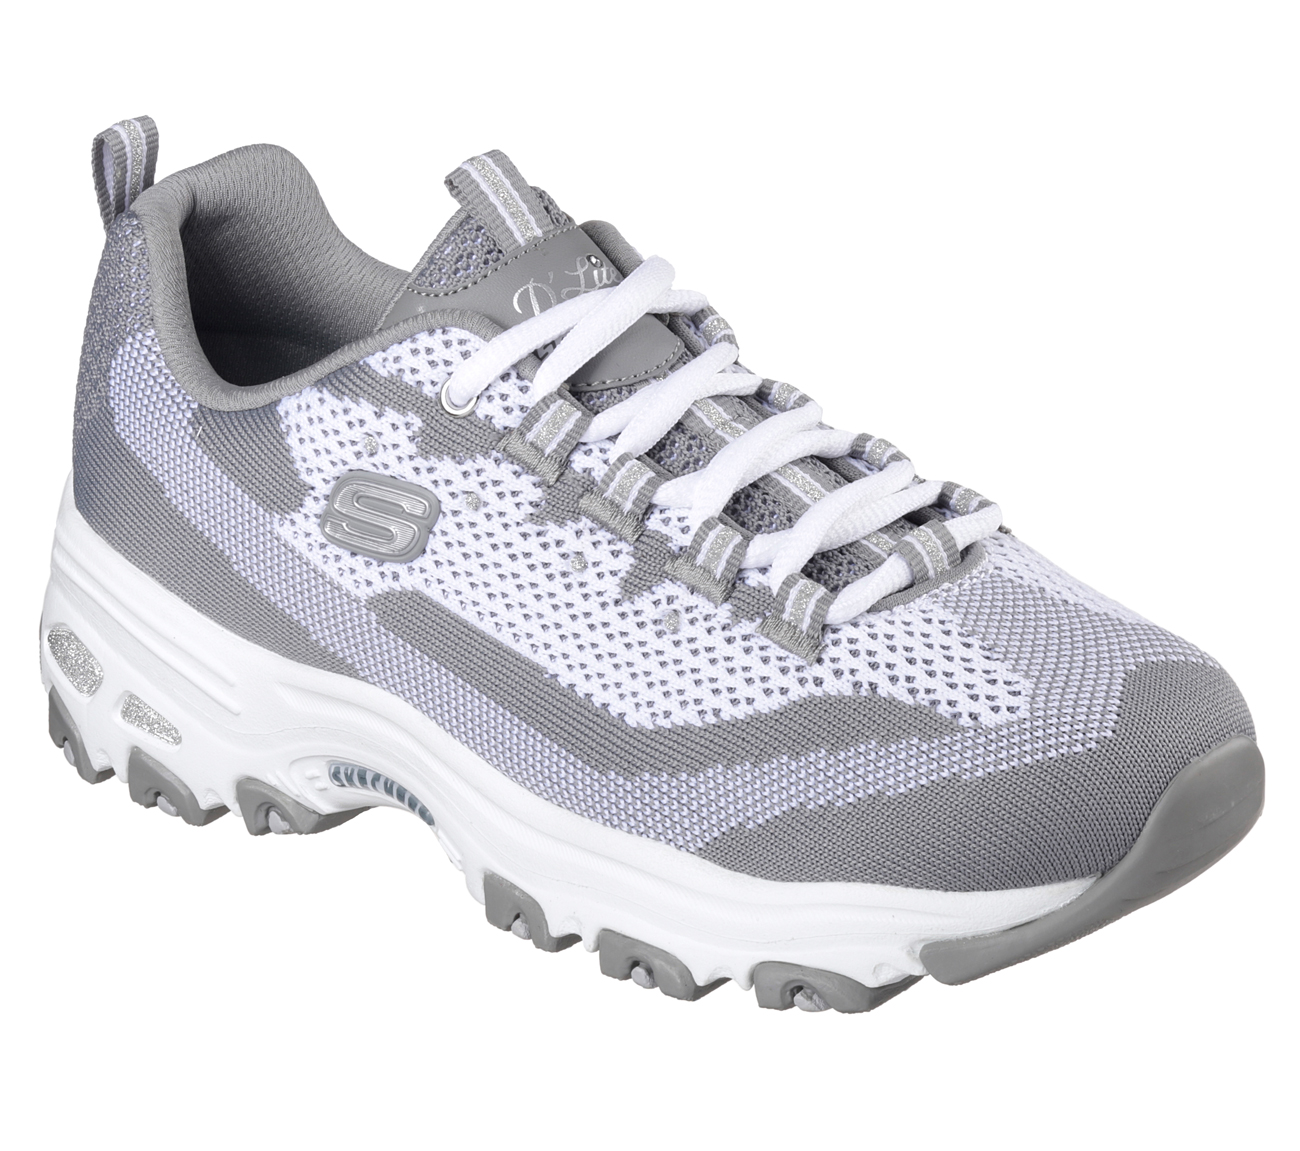 Skechers 11955 GYW Women's D'LITES-REINVENTION Walking by Skechers